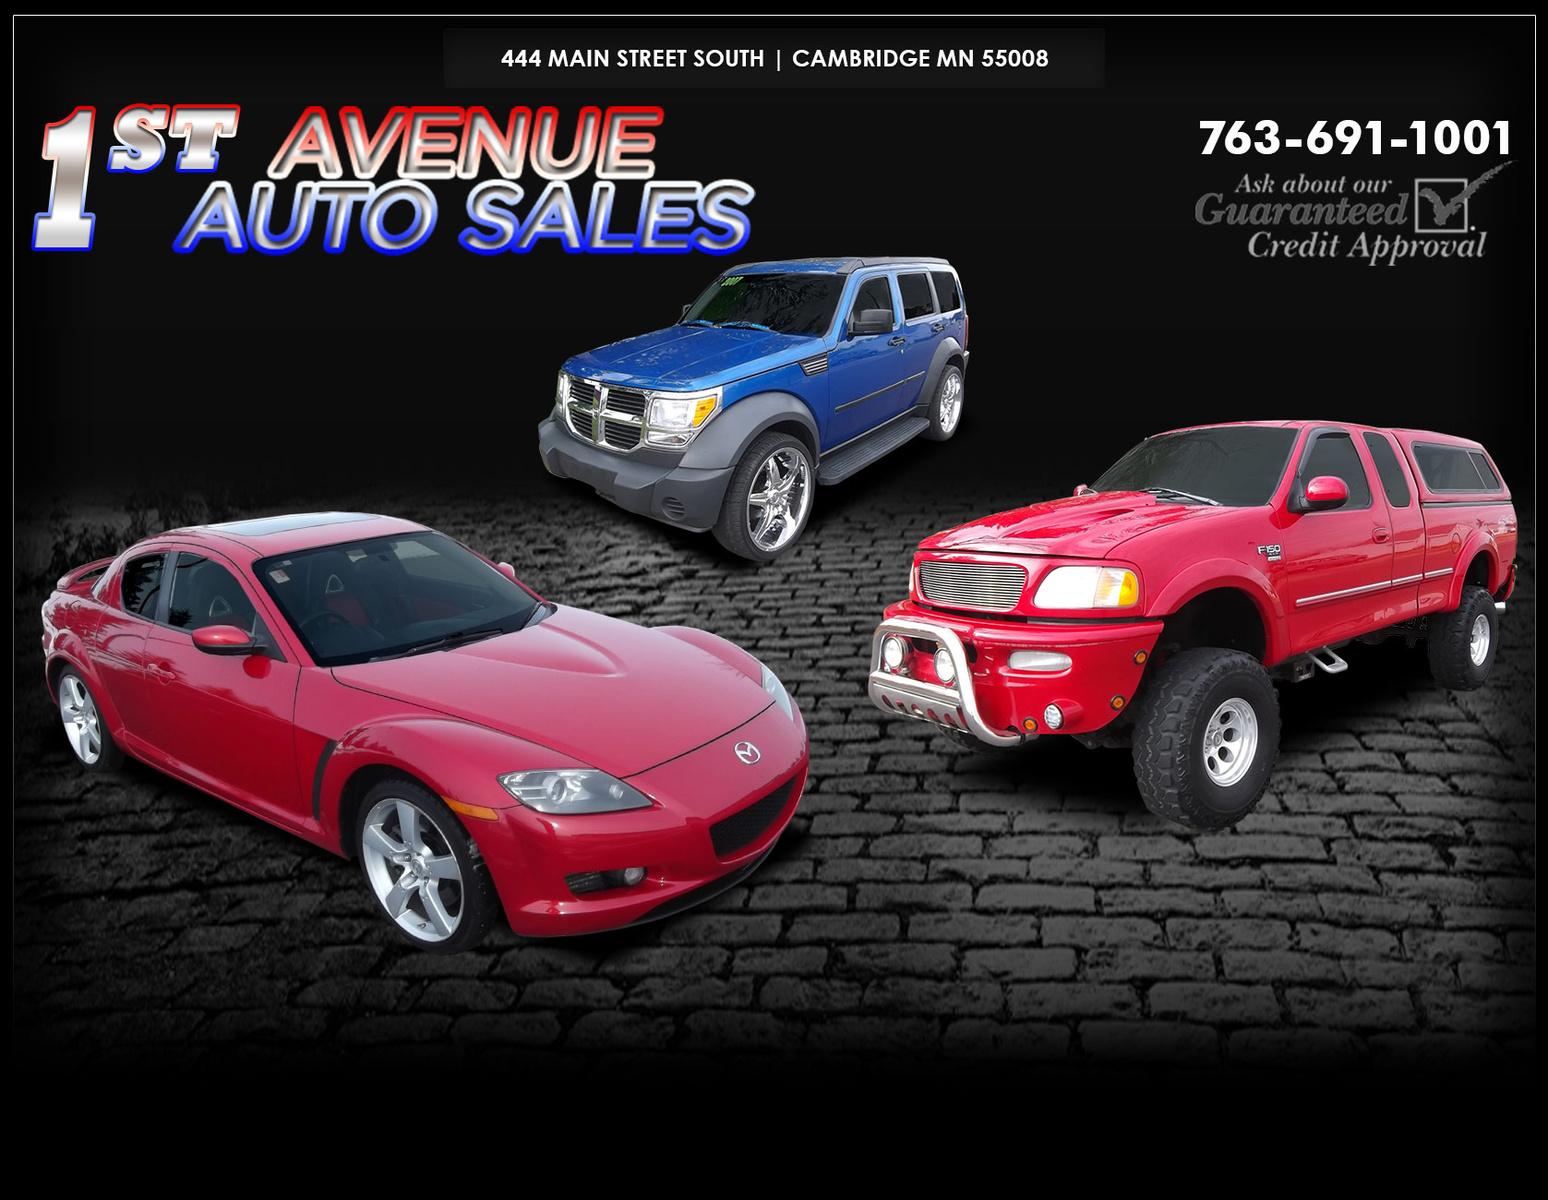 1st Avenue Auto Sales Cambridge Mn Read Consumer